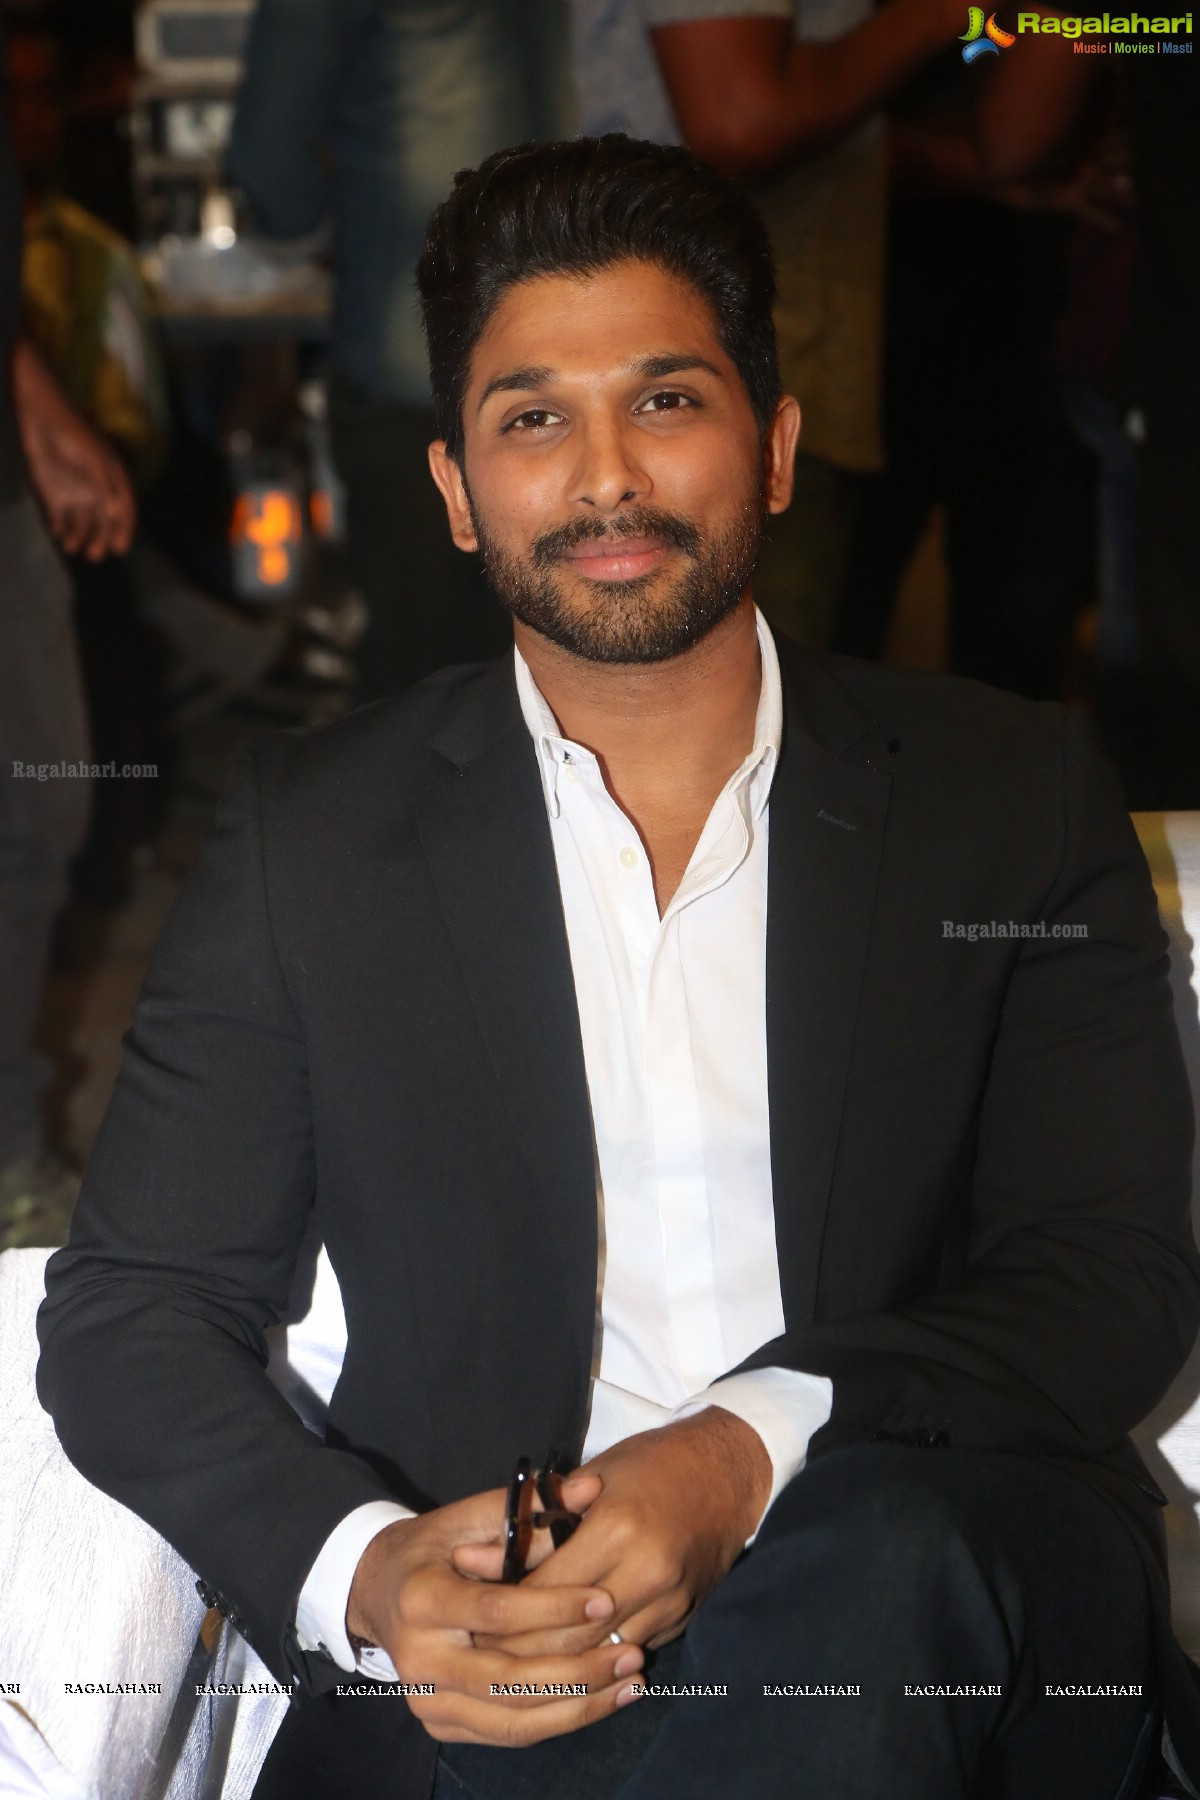 Allu Arjun Image 4 Latest Tollywood Actor Photos Images Photos